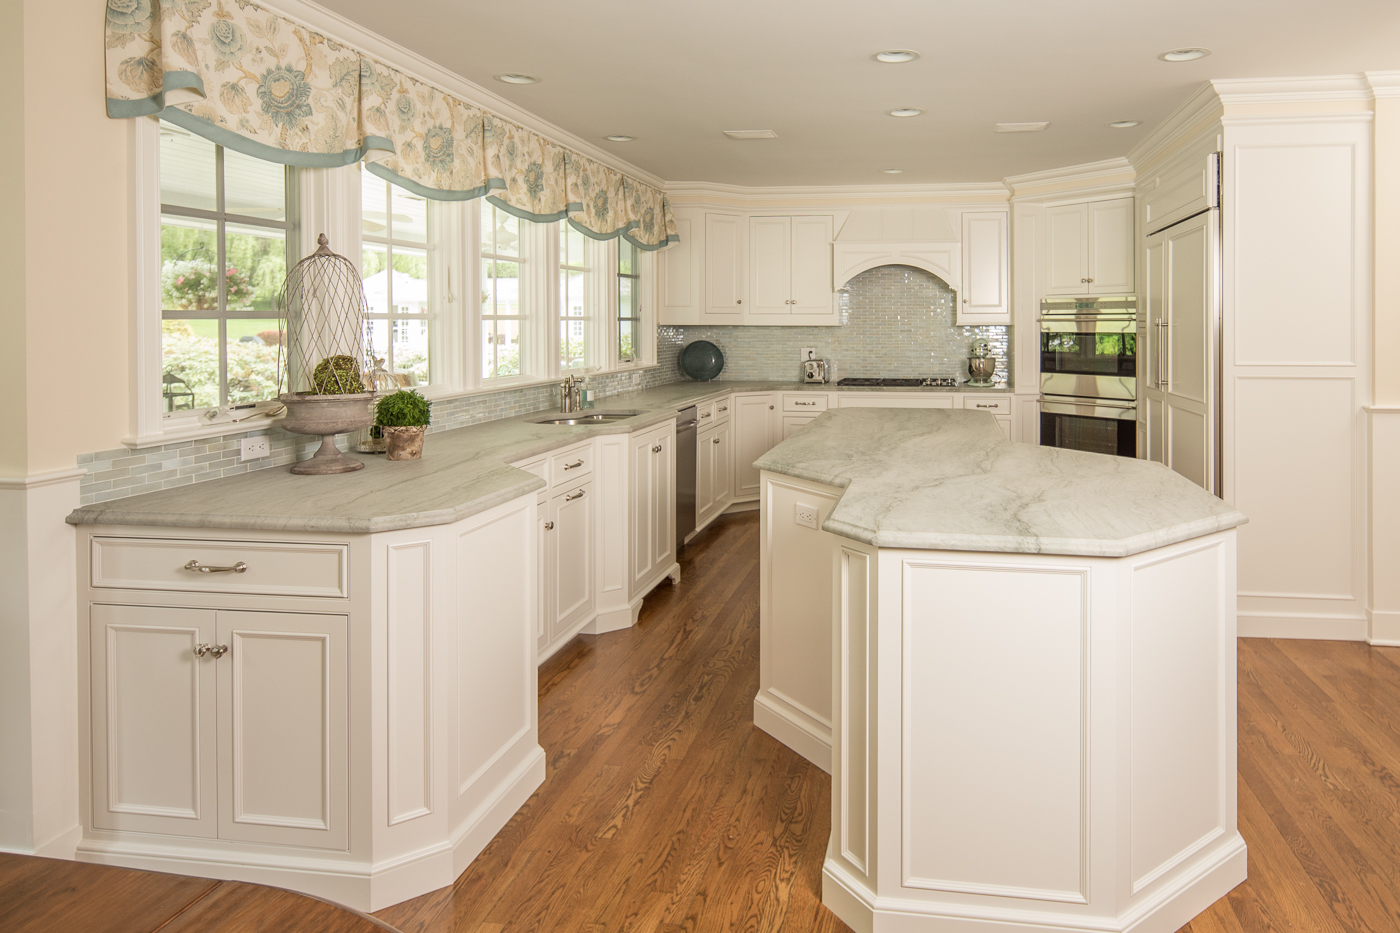 Kitchen Design Ct Awesome Ackley Cabinet Llc Design Inspiration